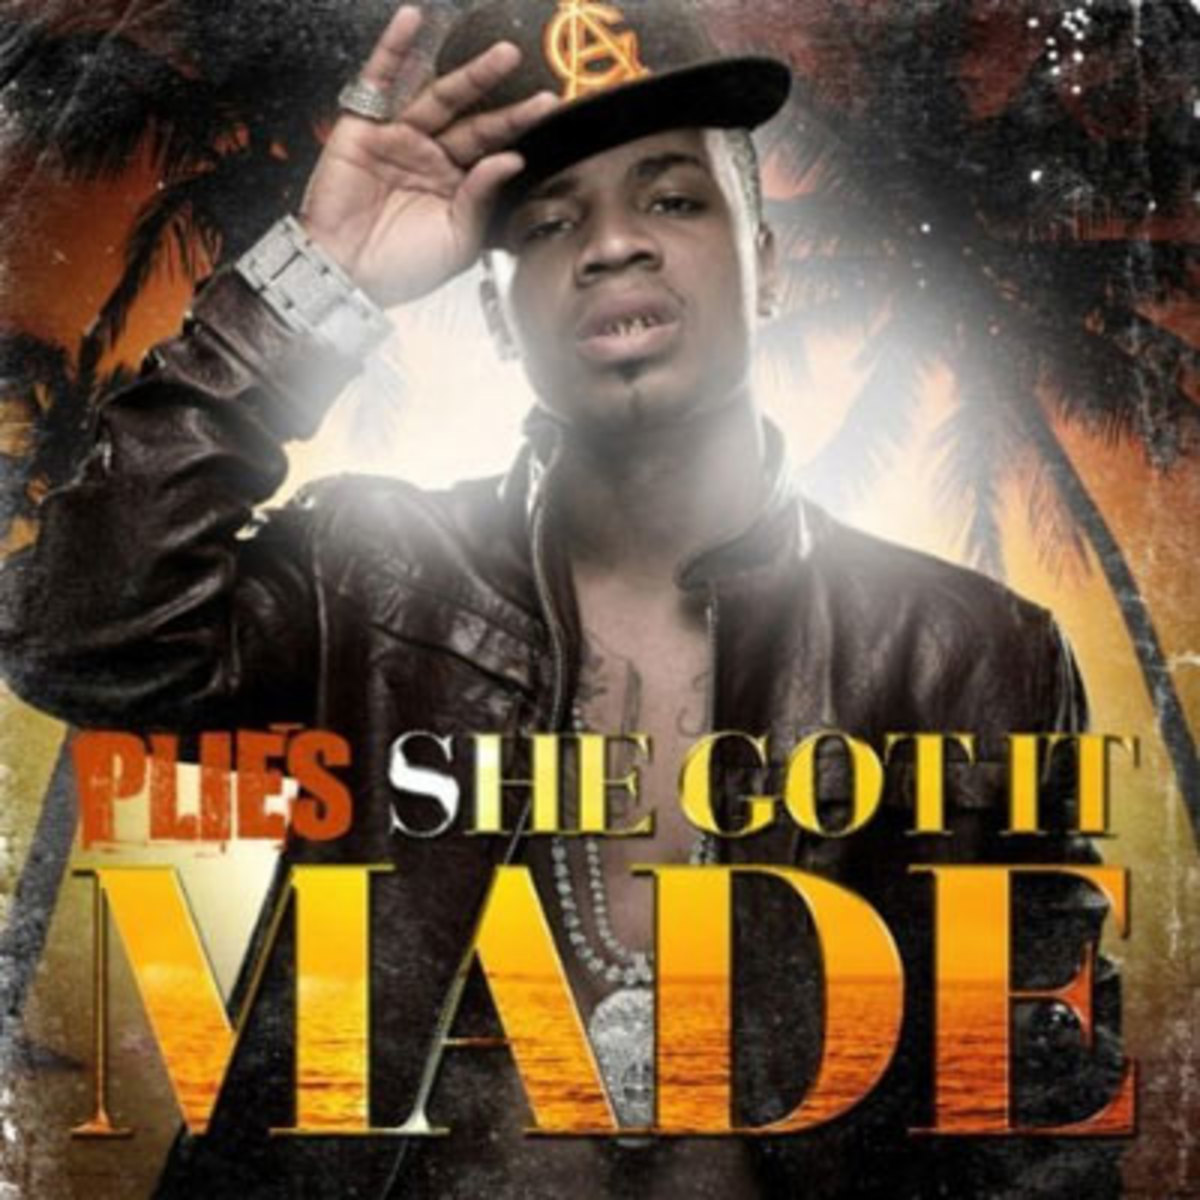 plies-shegotitmade.jpg